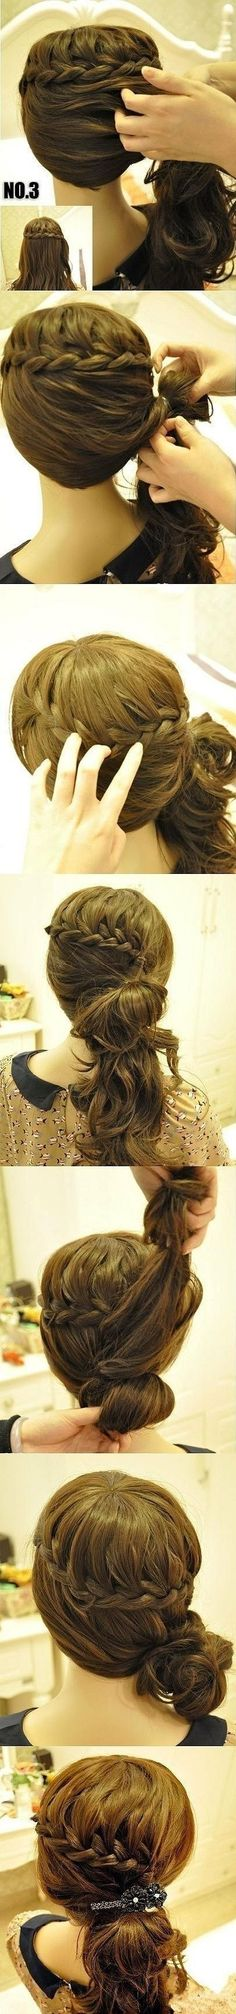 love this hairstyle...I'm thinking of doing it for the winter ball in November :) perfect to keep hair out of the way while dancing